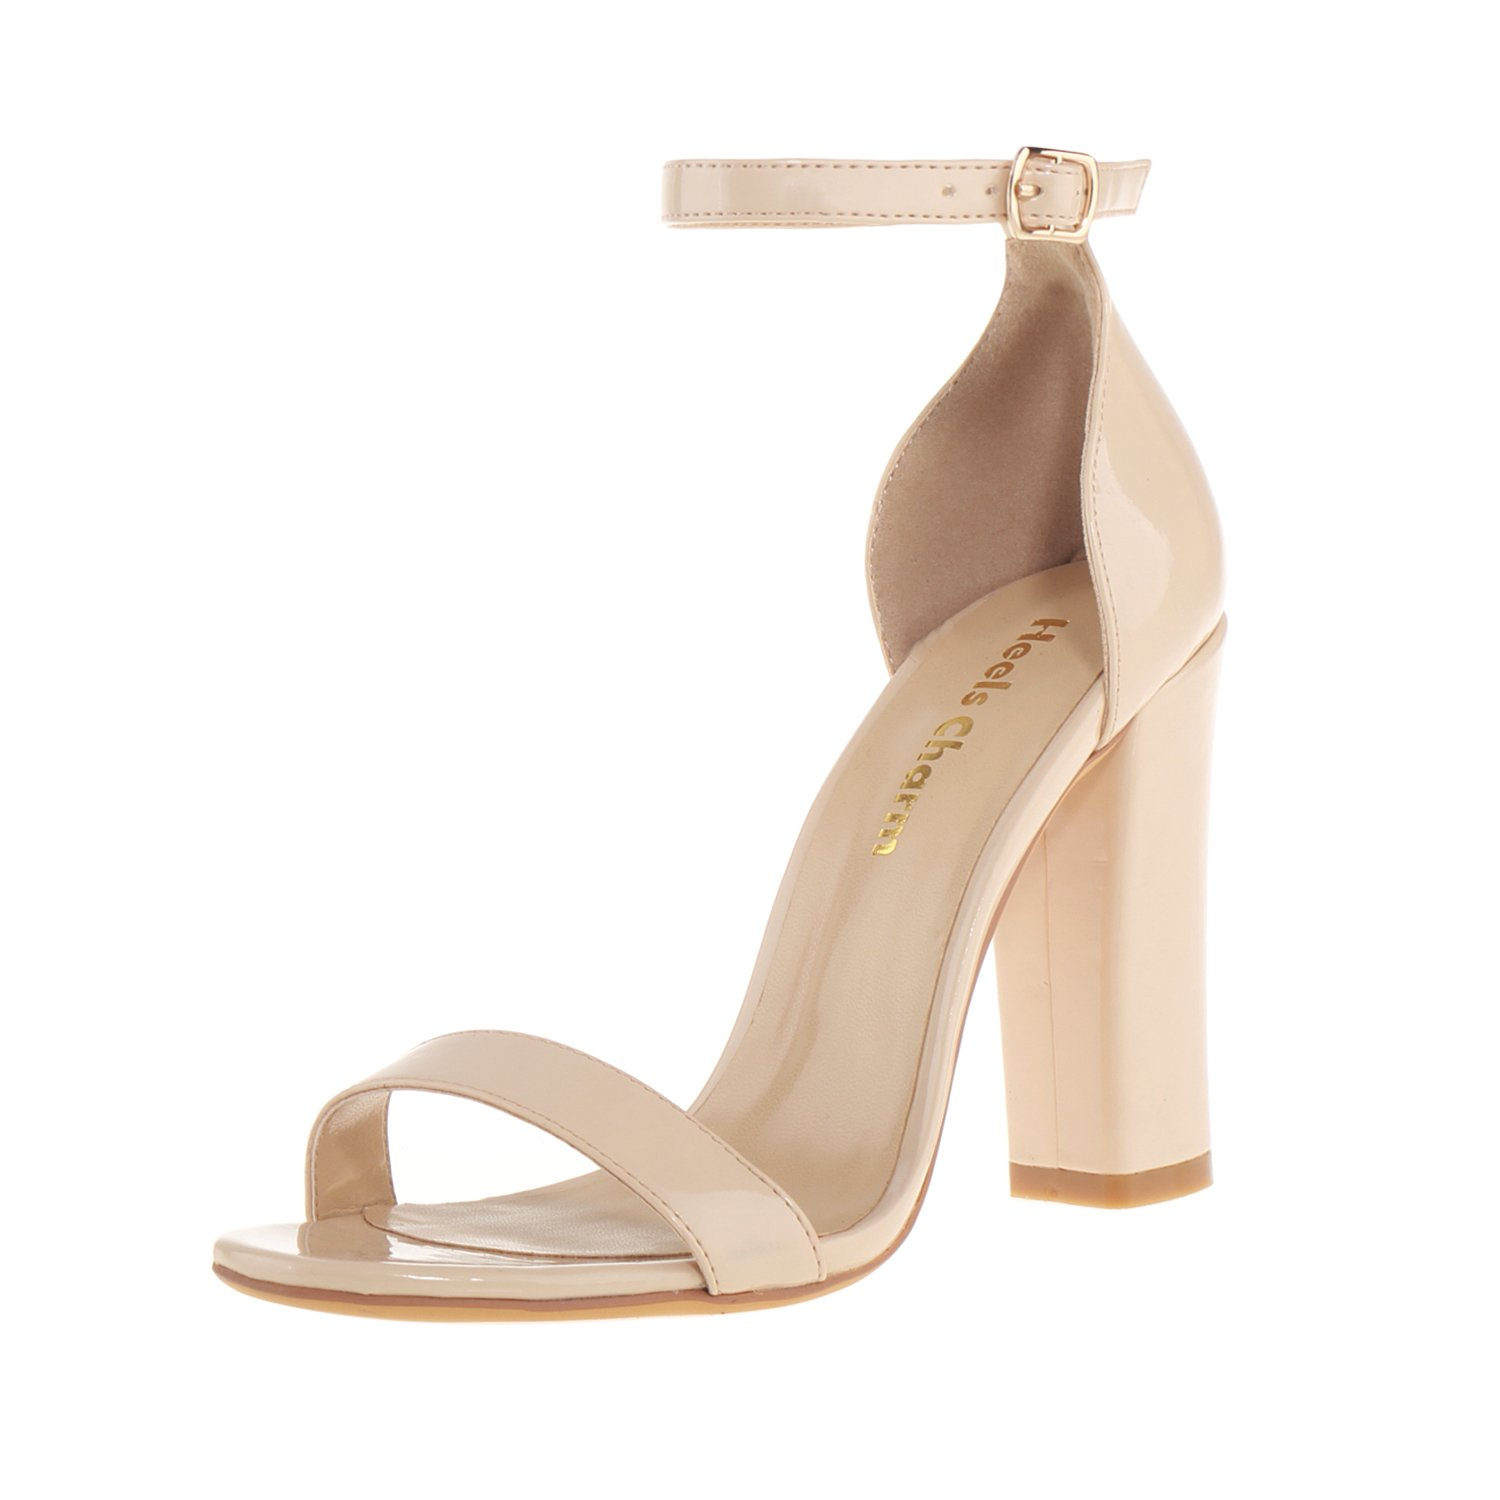 def4983075e Women s Strappy Chunky High Heel Ankle Strap Sandals Open Toe Dress Sandal  for Wedding Birthday Party